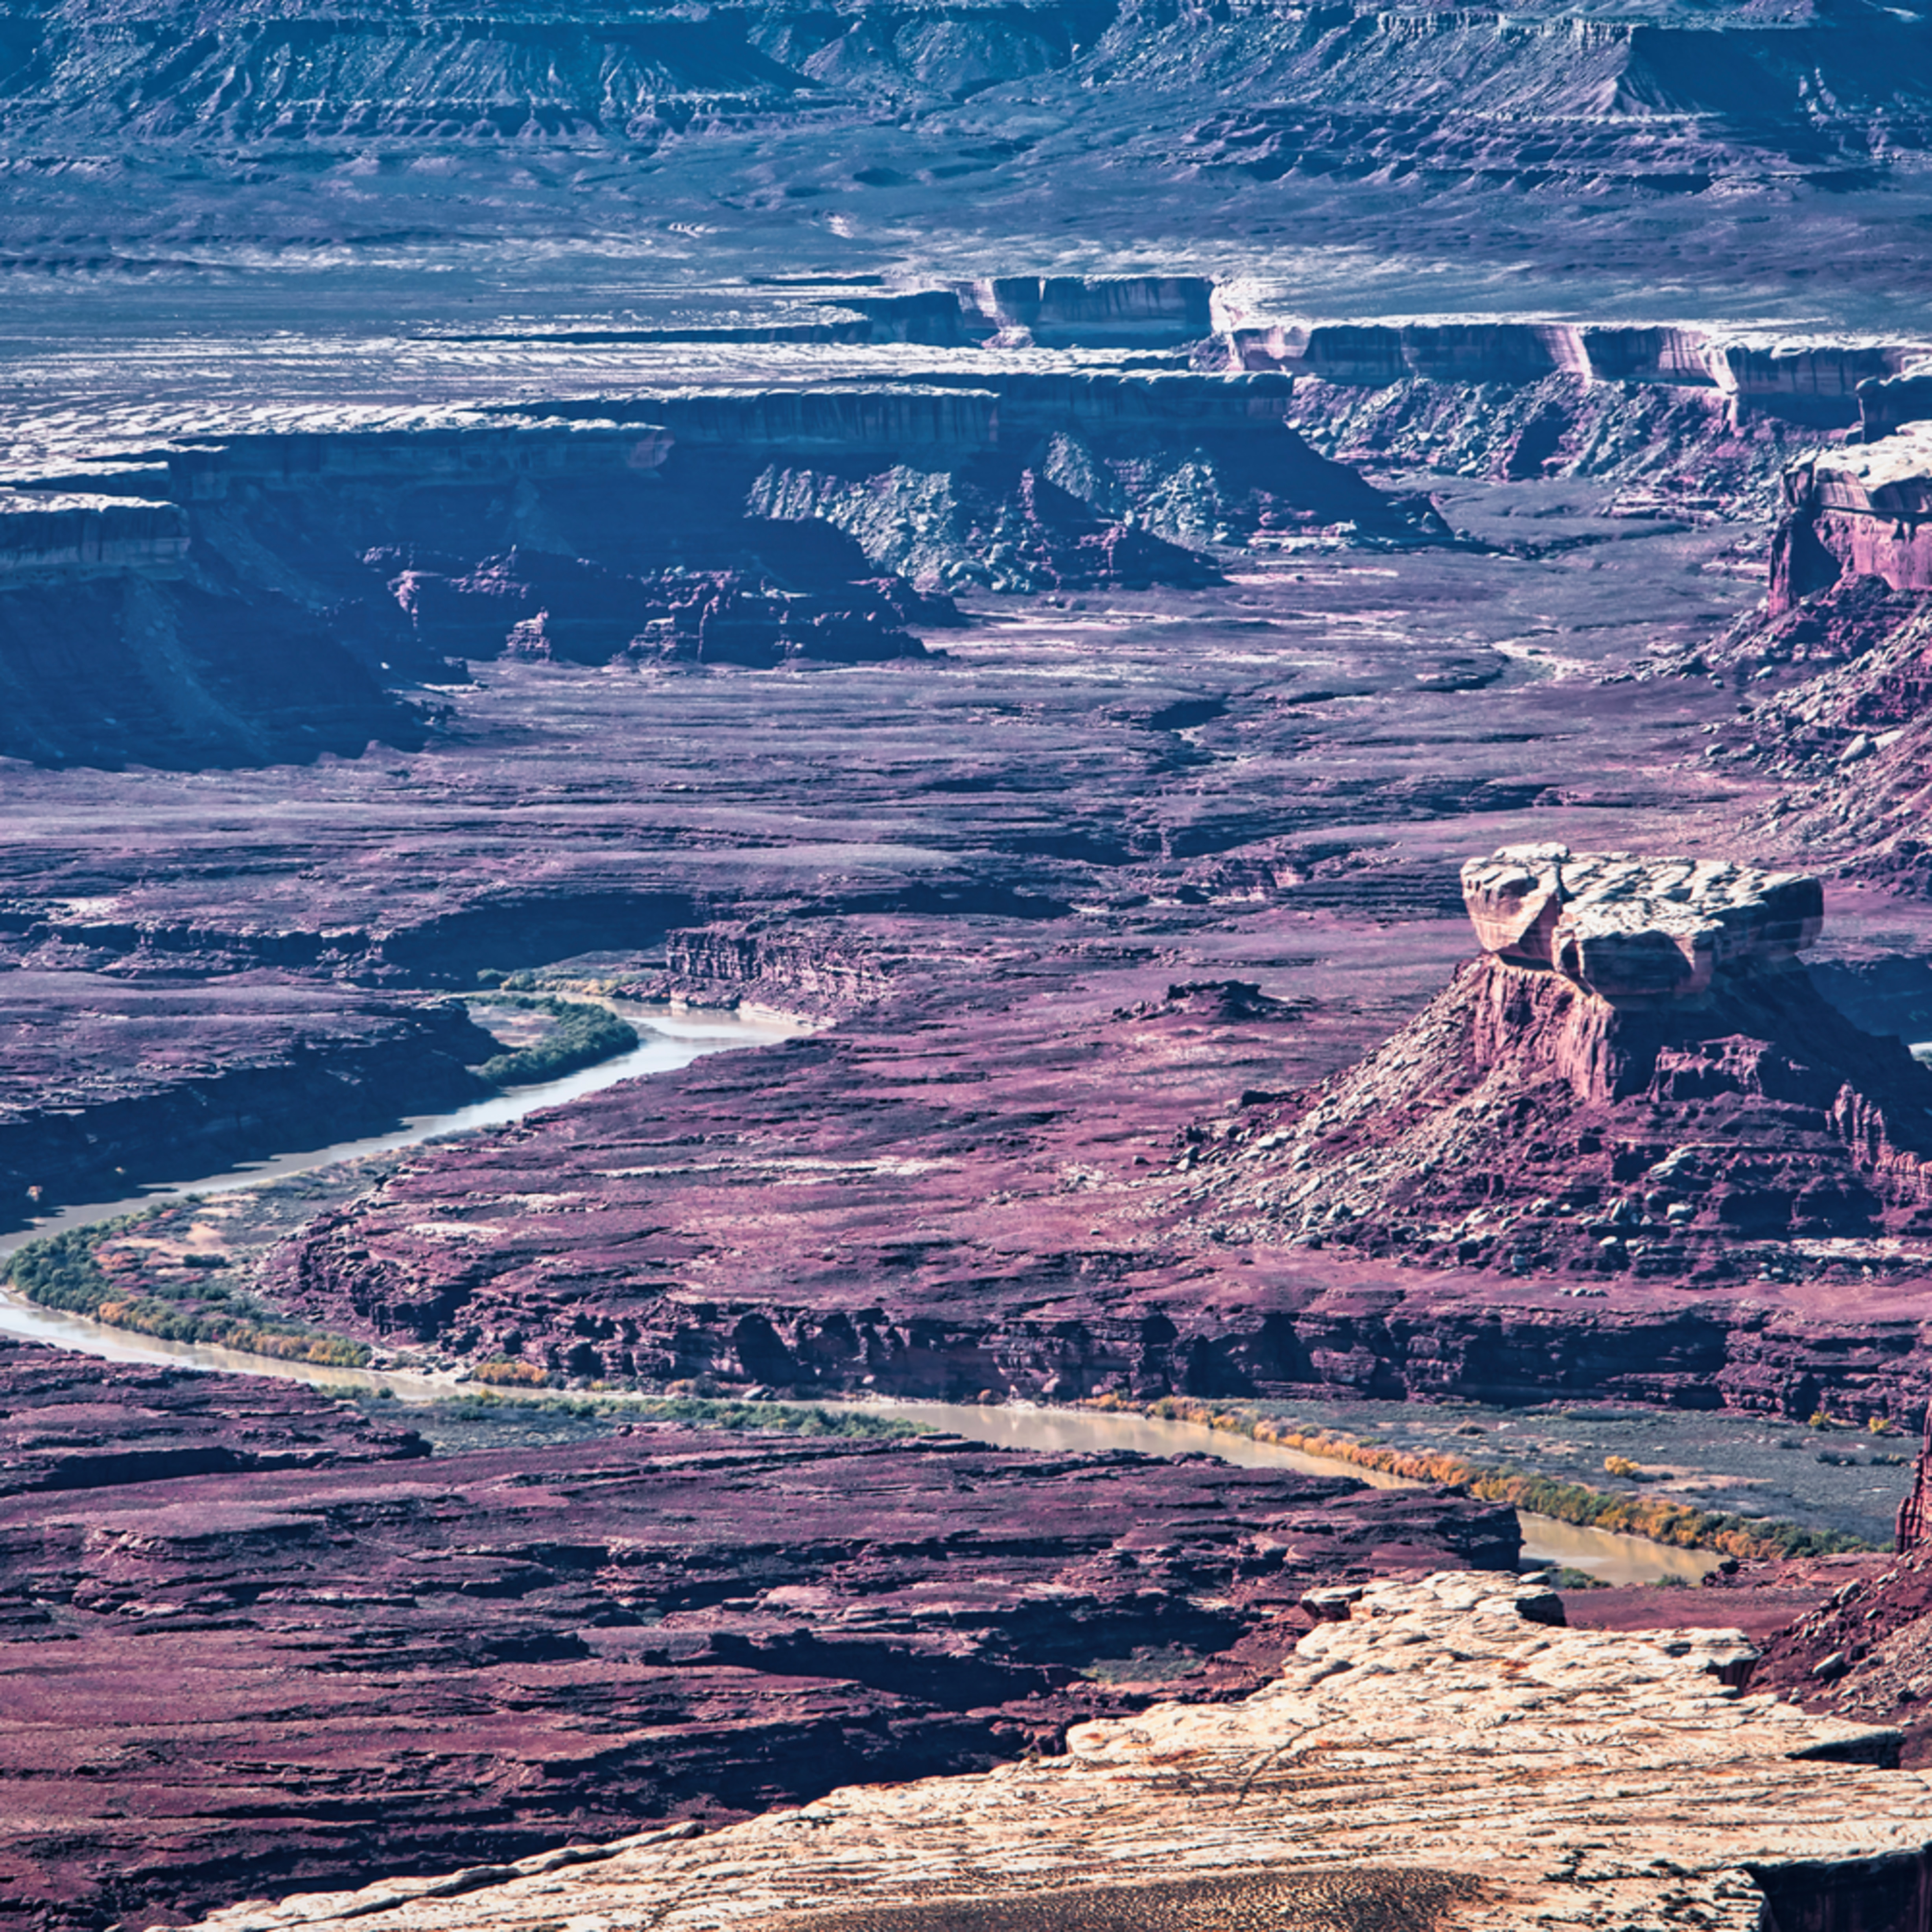 Andy crawford photography canyonlands national park 181108 002 pfq0tc